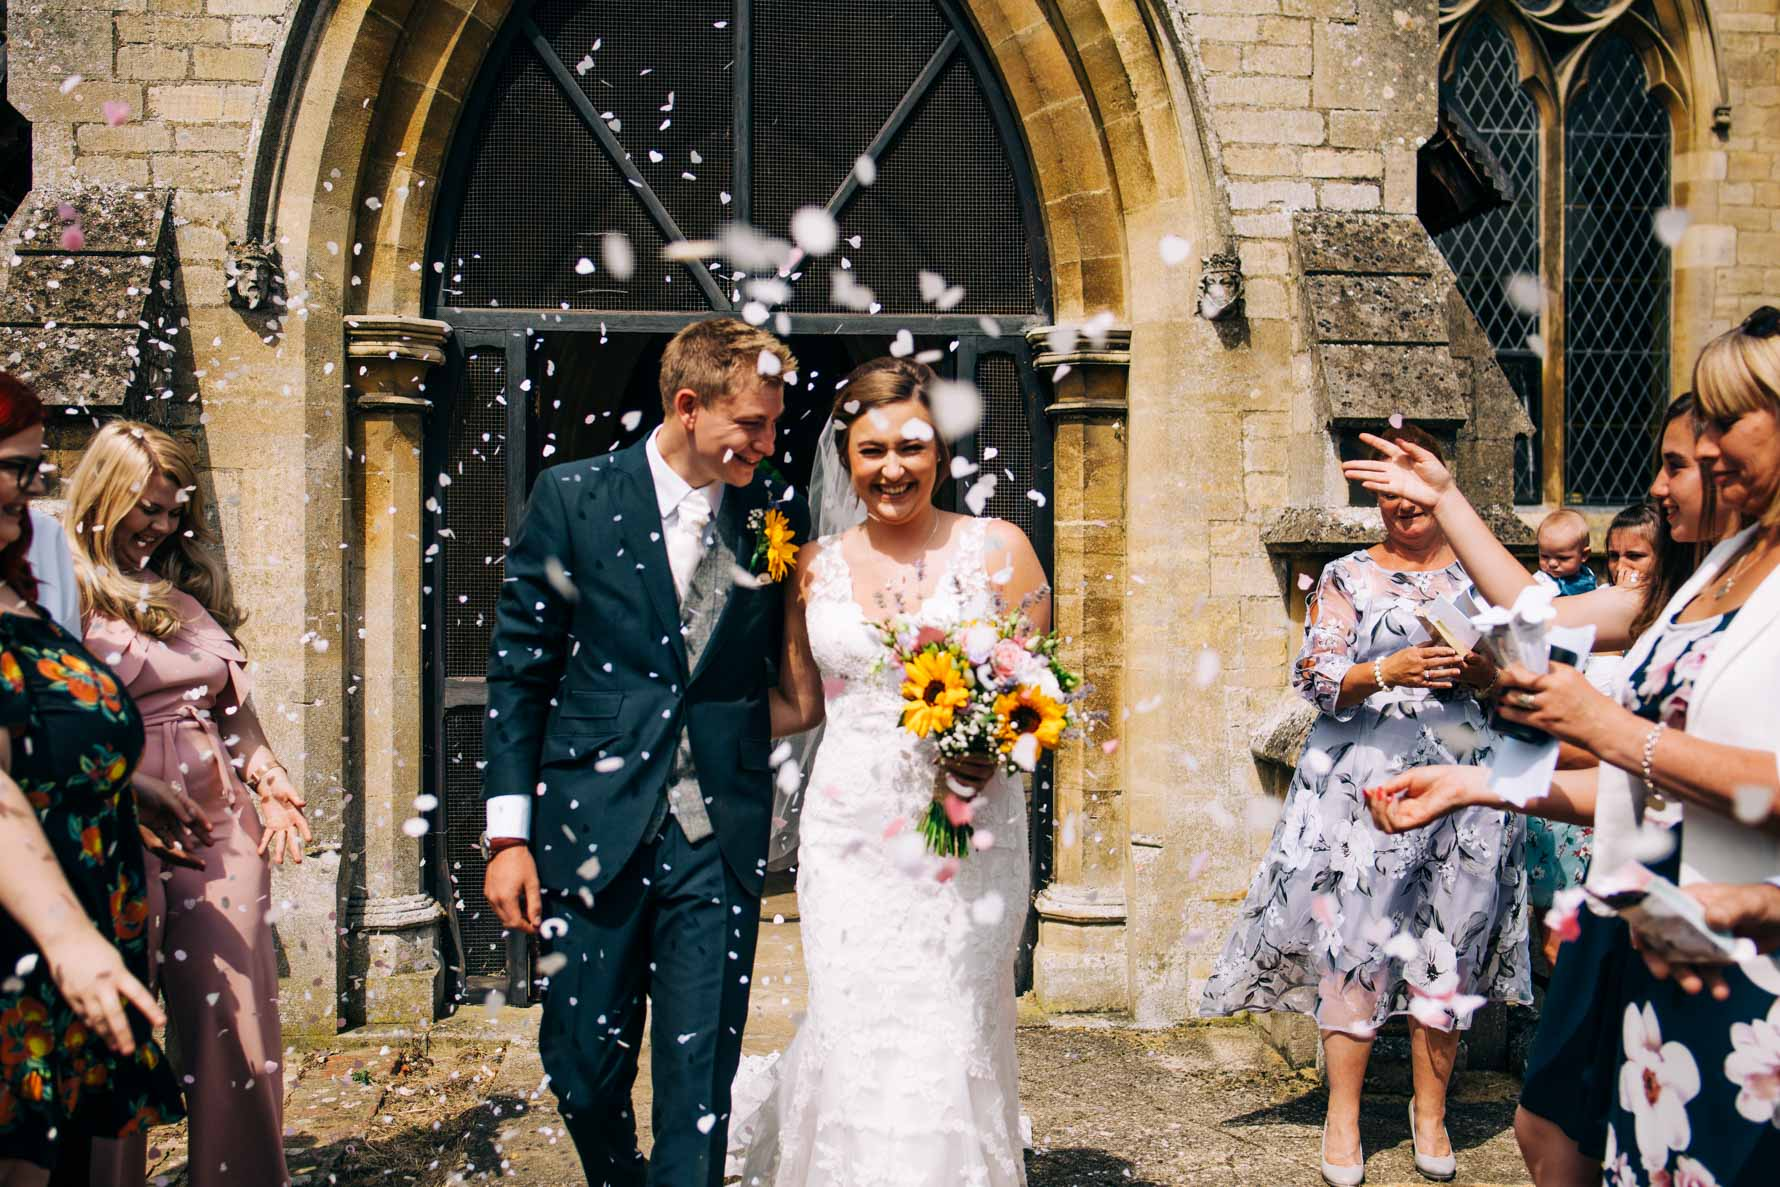 Bride and groom walking through confetti - Exton Park wedding photographer